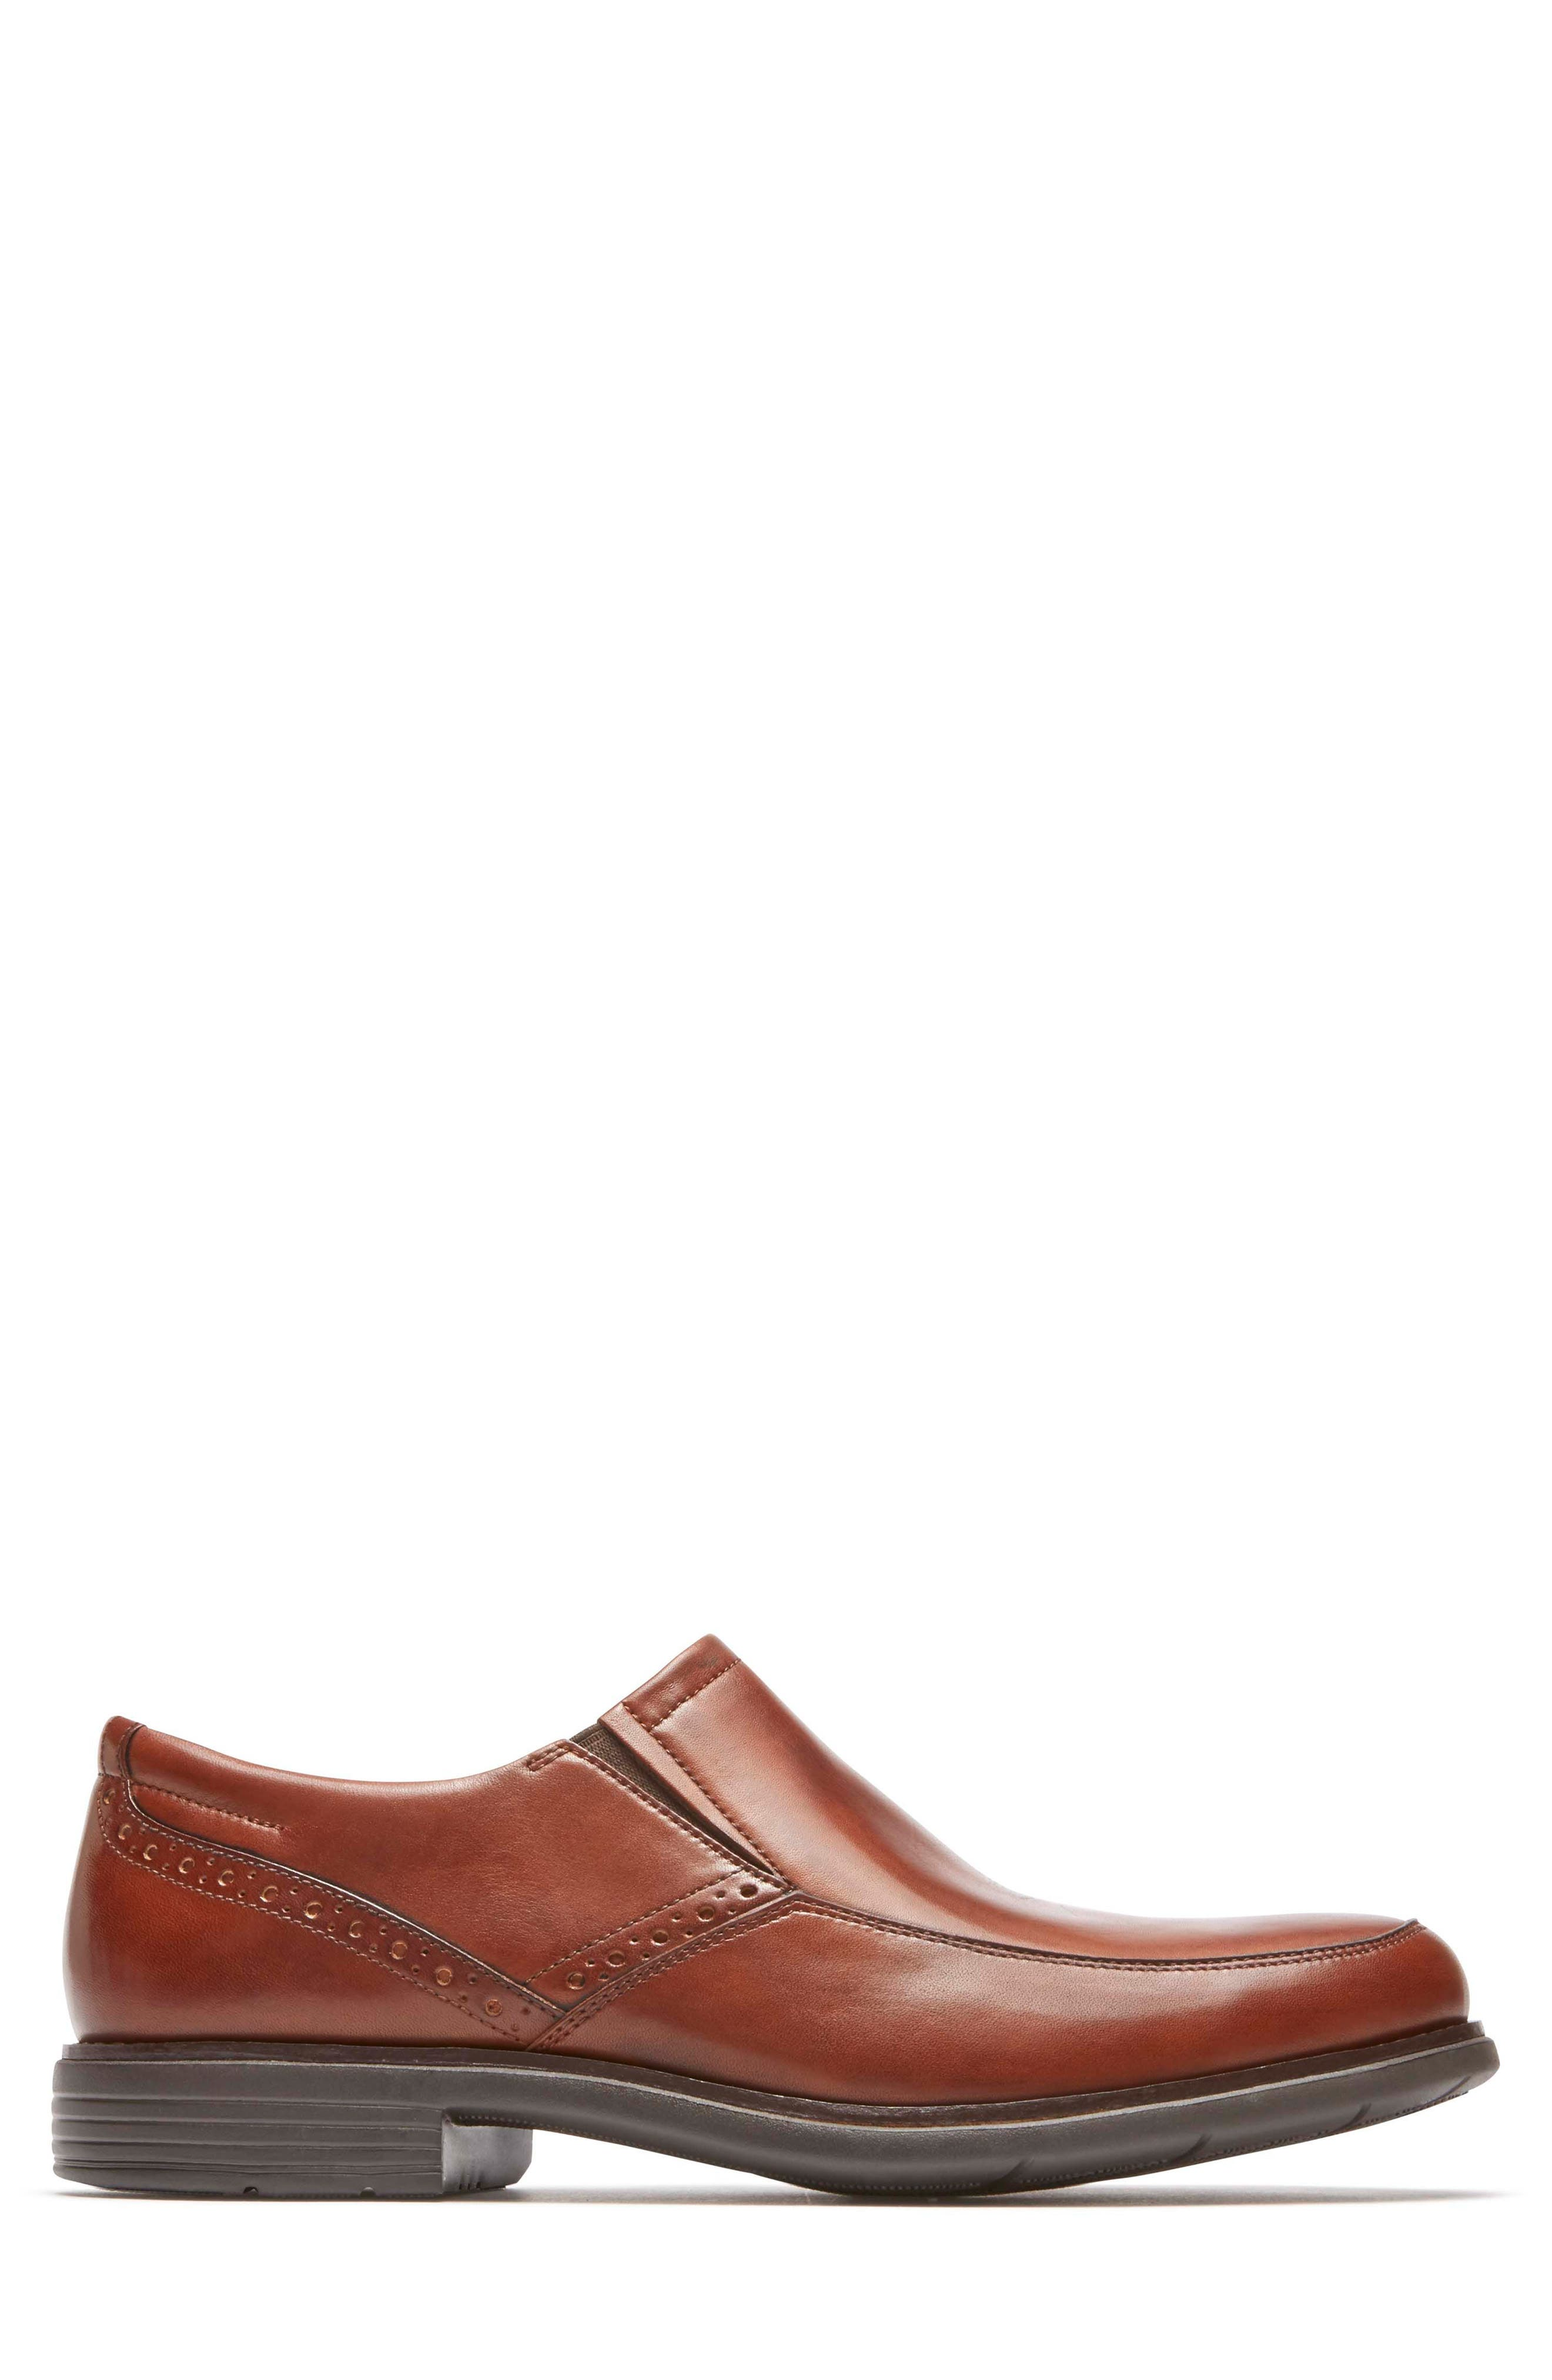 Total Motion Classic Dress Venetian Loafer,                             Alternate thumbnail 3, color,                             TAN LEATHER